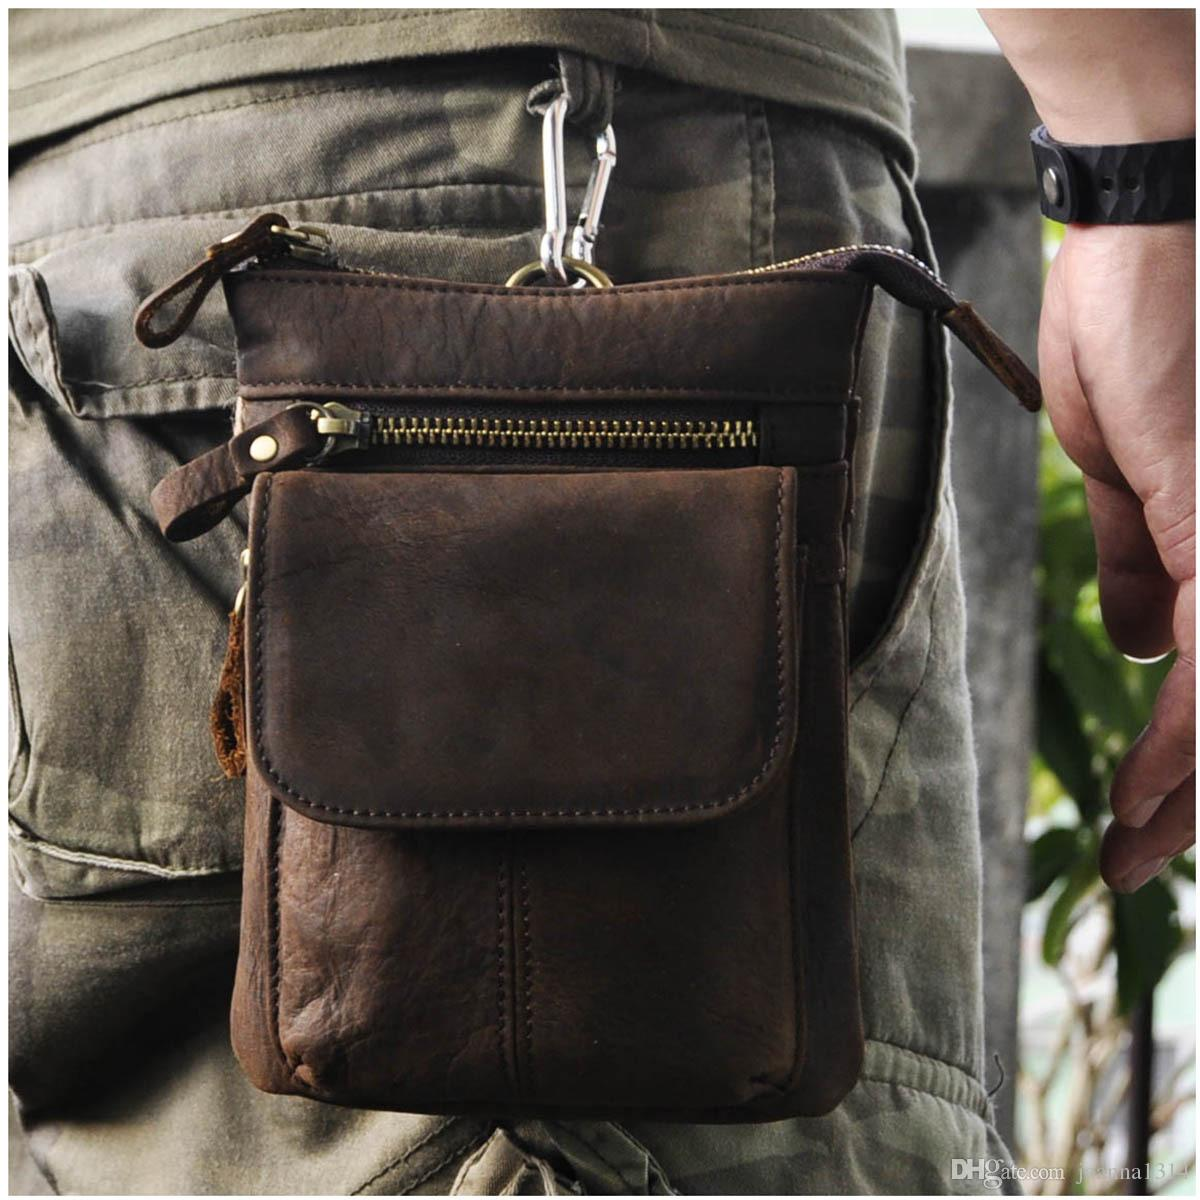 6a10a9093c Crazy Horse Leather Man Fanny Pack Small Waist Bag With A Long Shoulder  Belt Good Outdoor Fashion Accessory Factory Sales Hydration Bladder  Designer Fanny ...